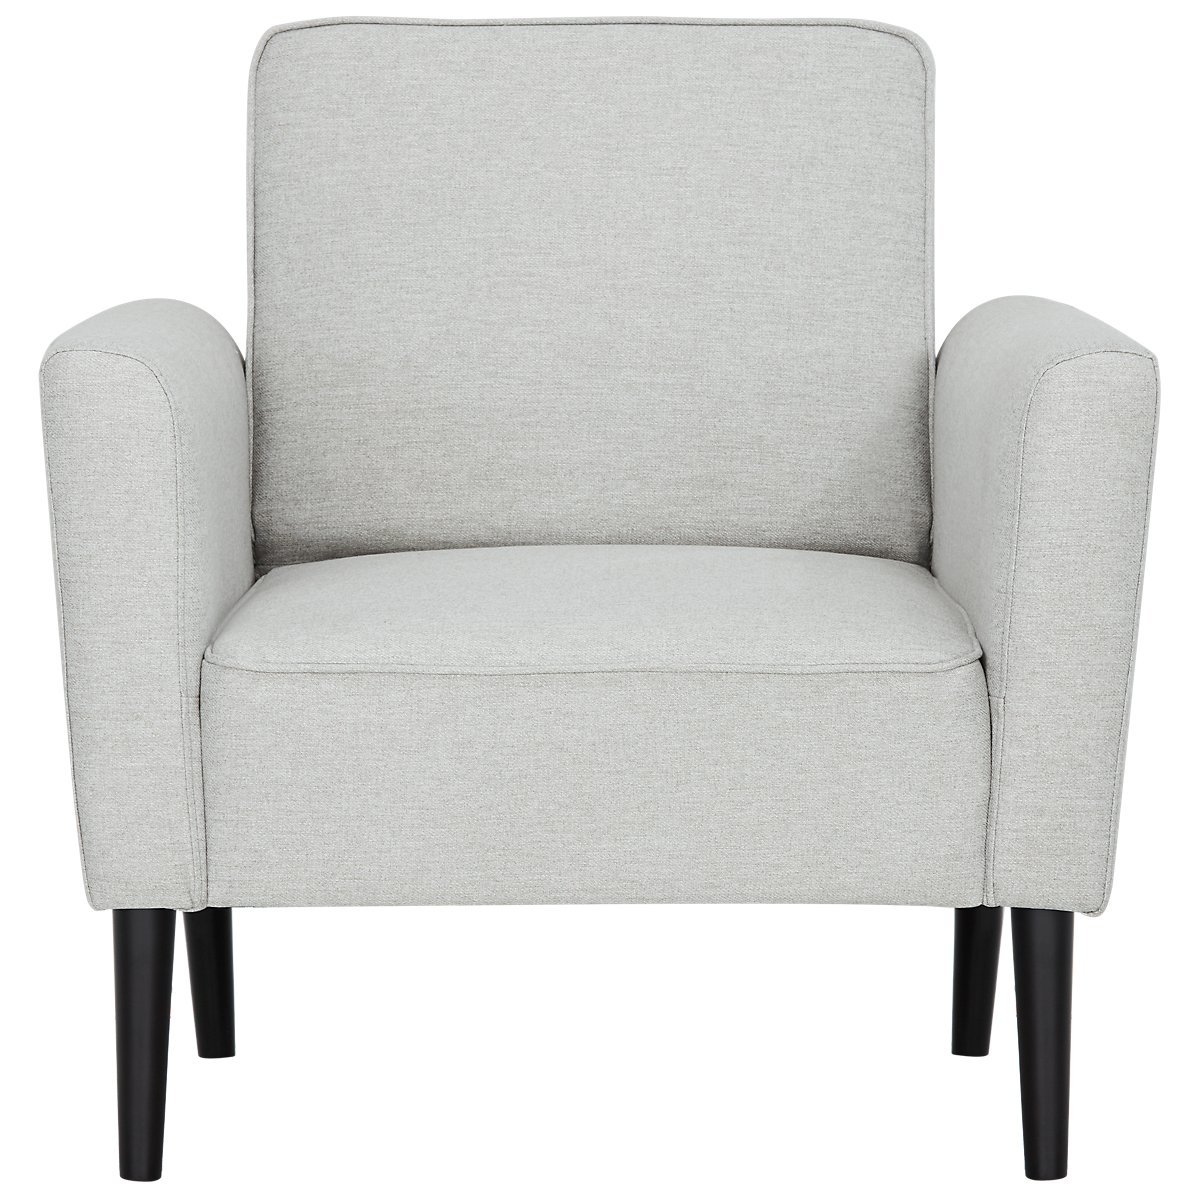 Sage light gray accent chair